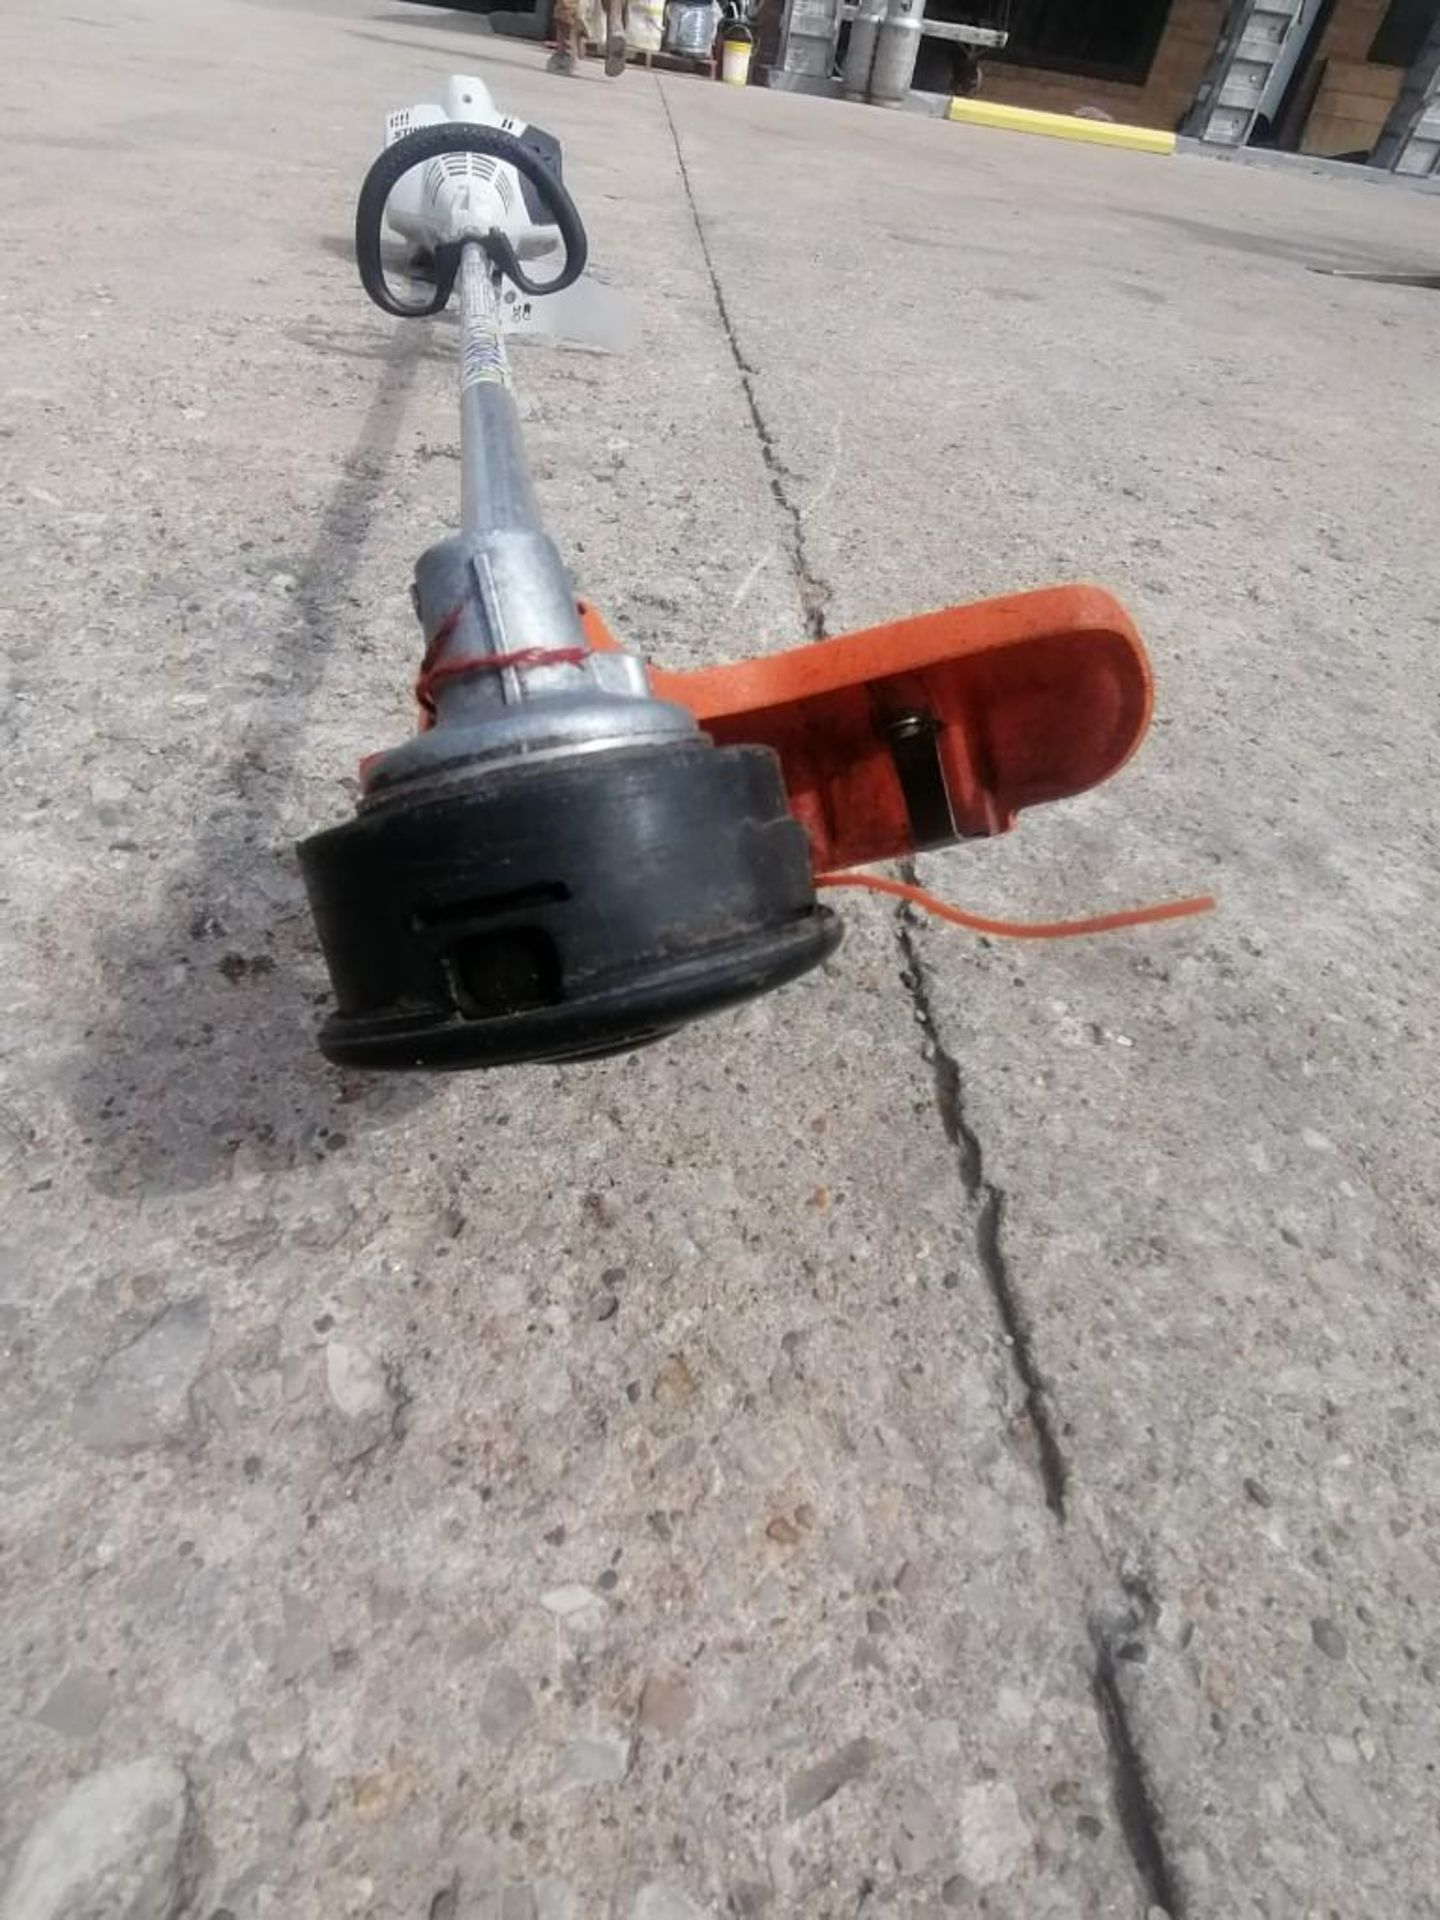 Lot 42 - (1) Stihl FS56RC String Trimmer. Located at 301 E Henry Street, Mt. Pleasant, IA 52641.